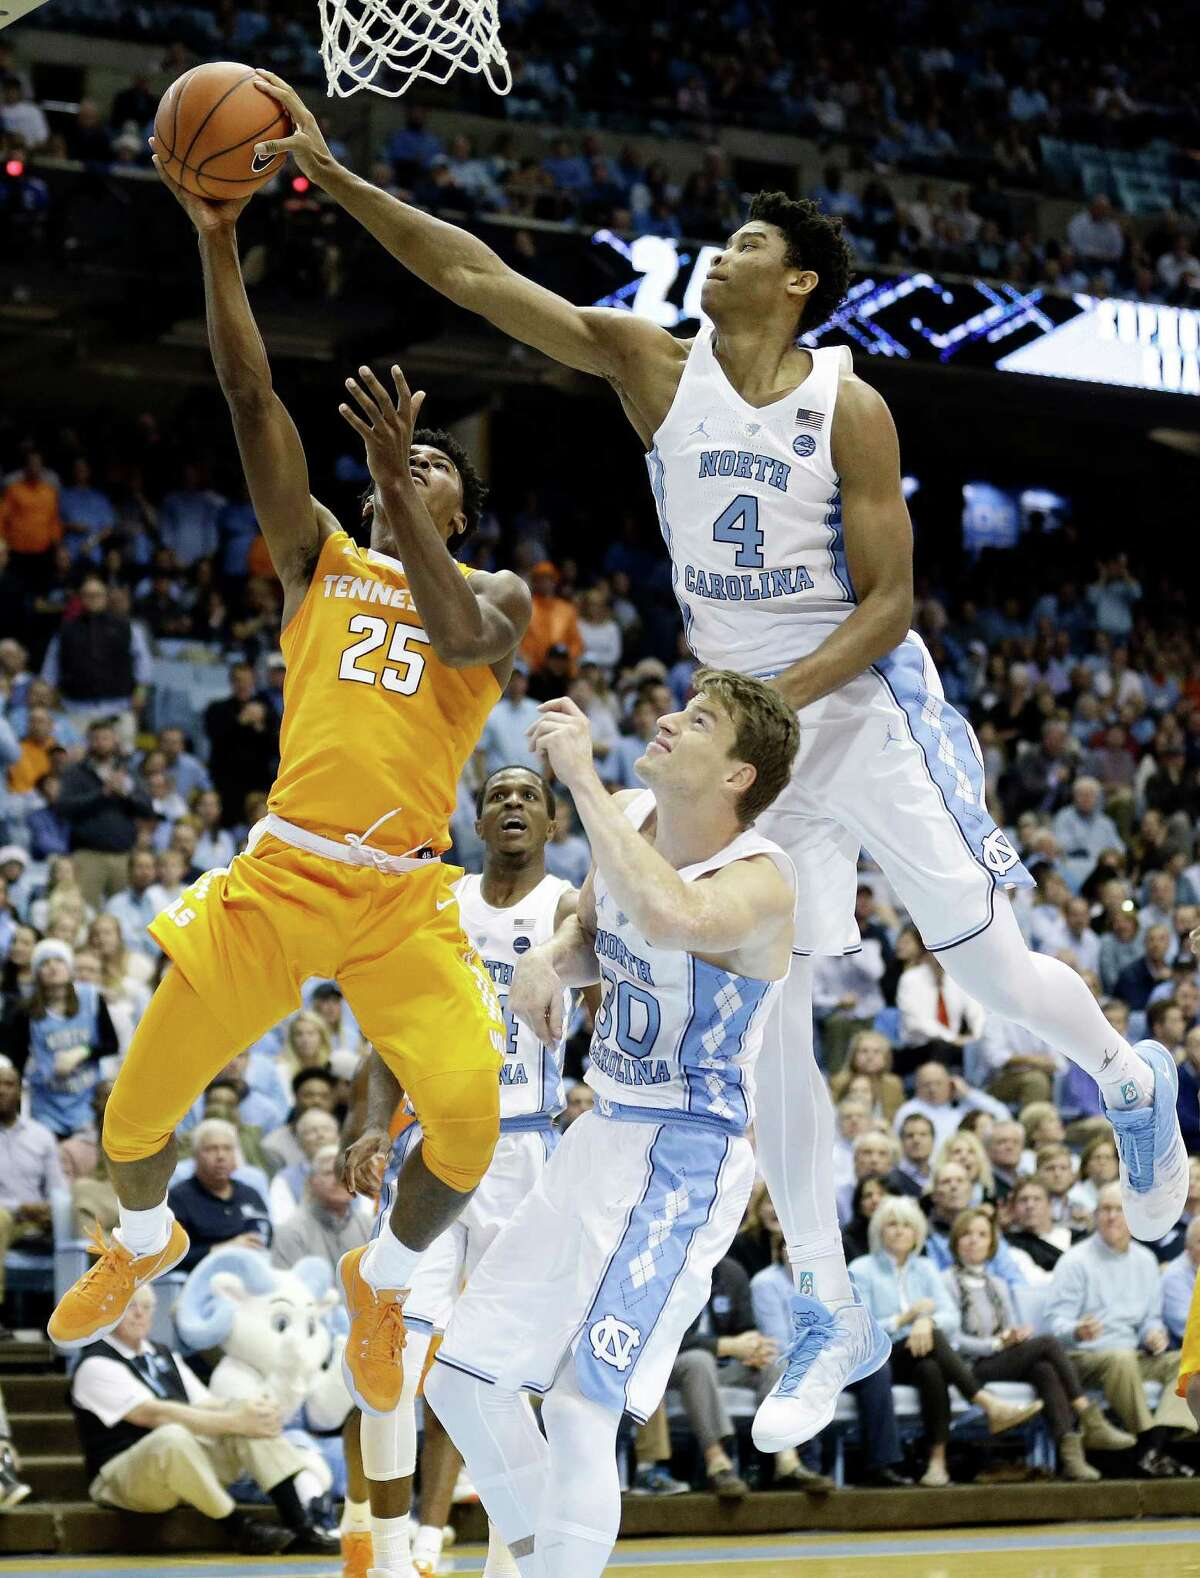 North Carolina's Isaiah Hicks (4) goes over the back of teammate Stilman White to block a shot by Tennessee's Shembari Phillips (25) in the second half.